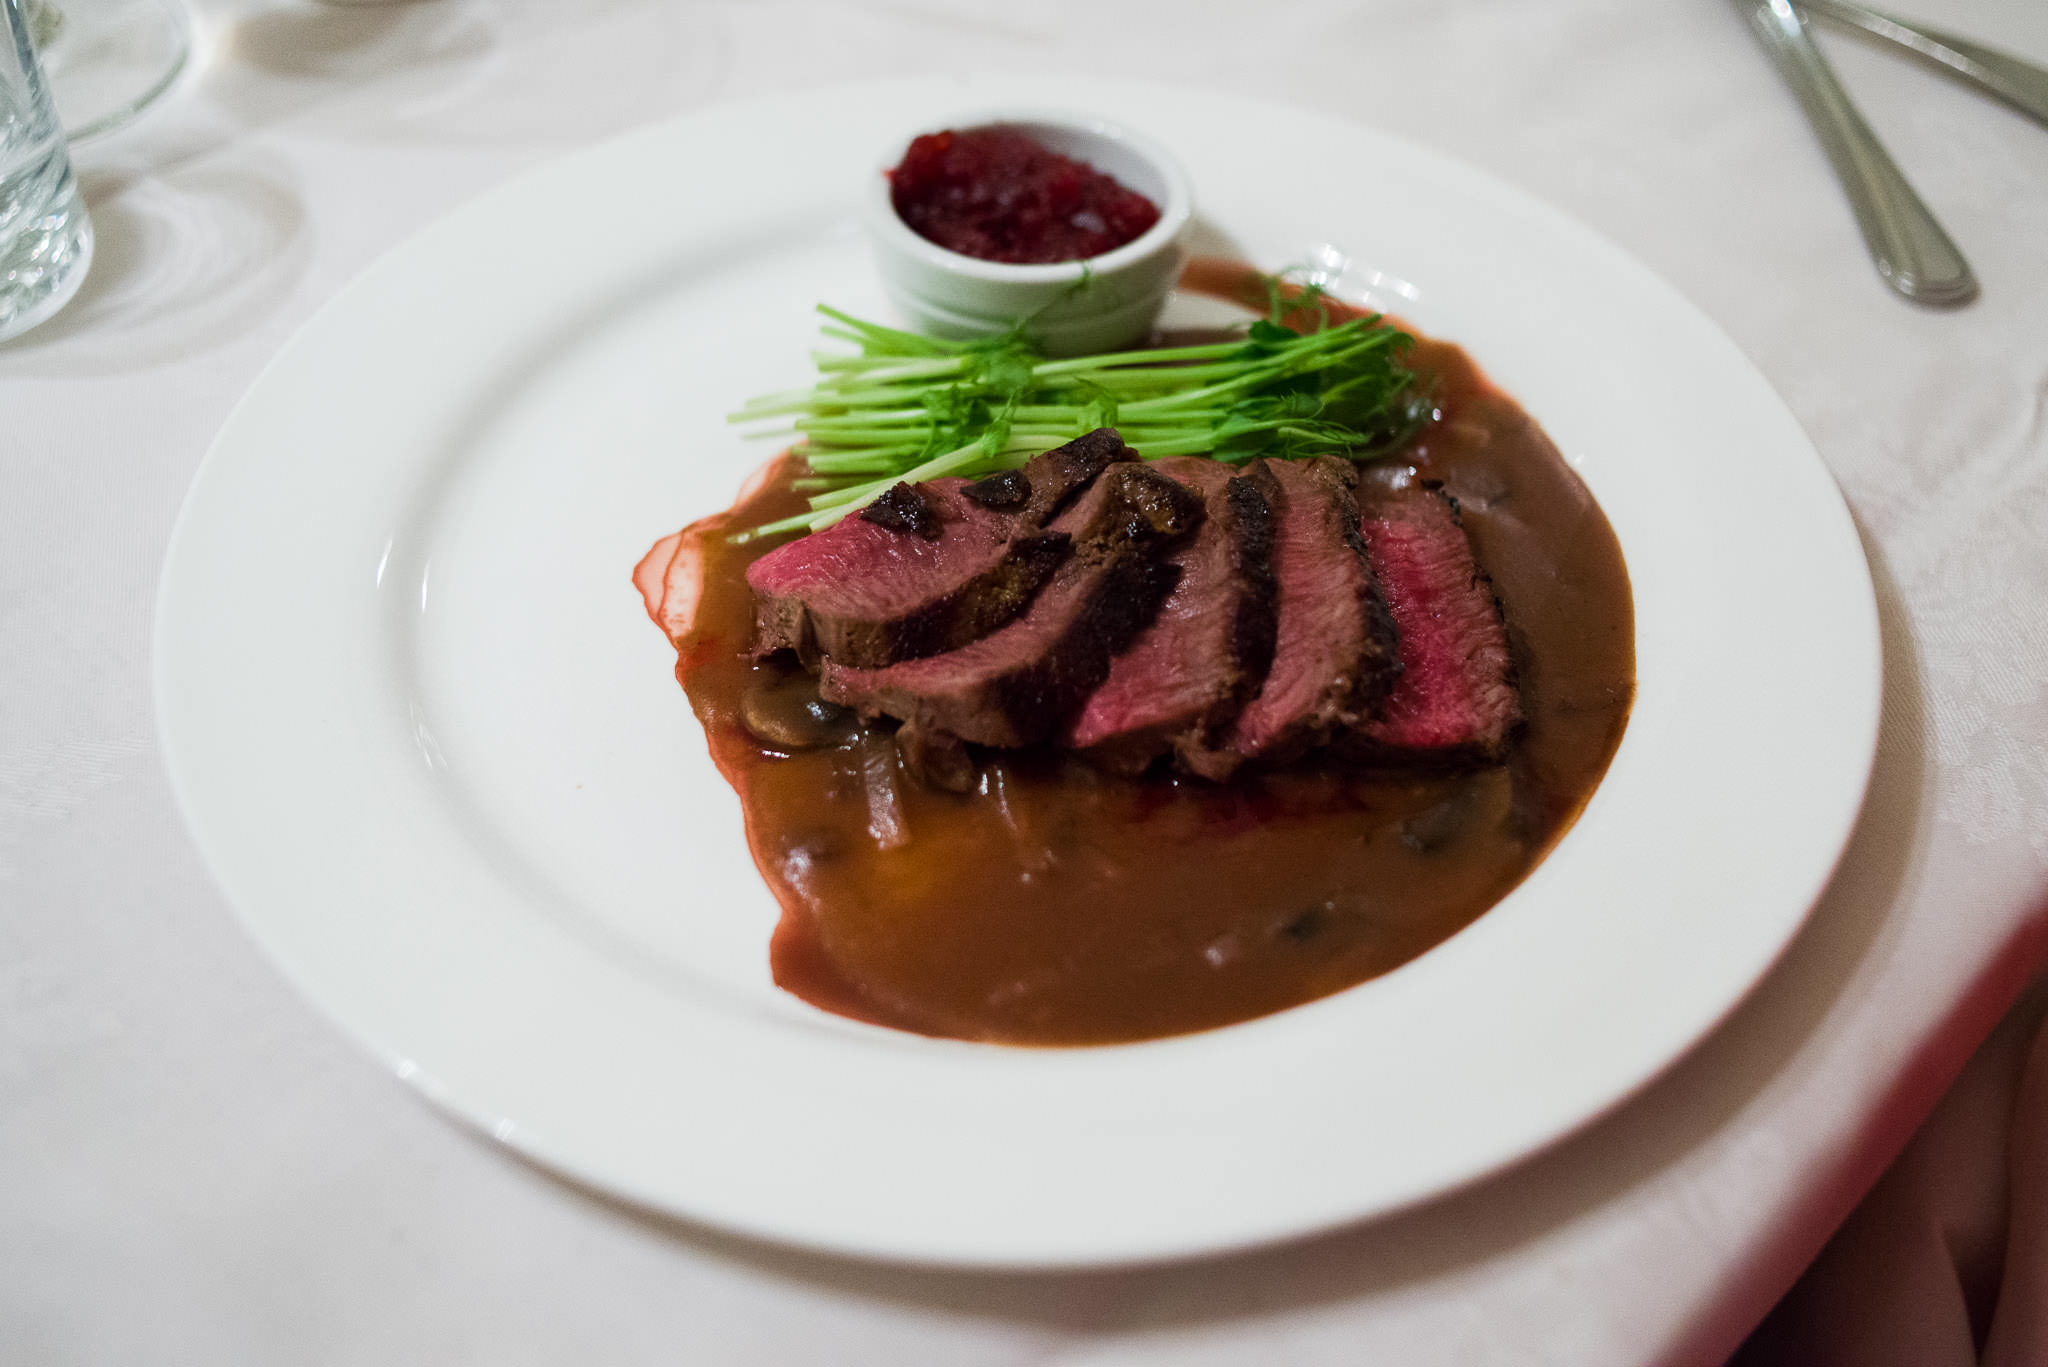 Grilled venison sirloin served on mushroom sauce with cranberry sauce on the side, Conti's, Woodvale